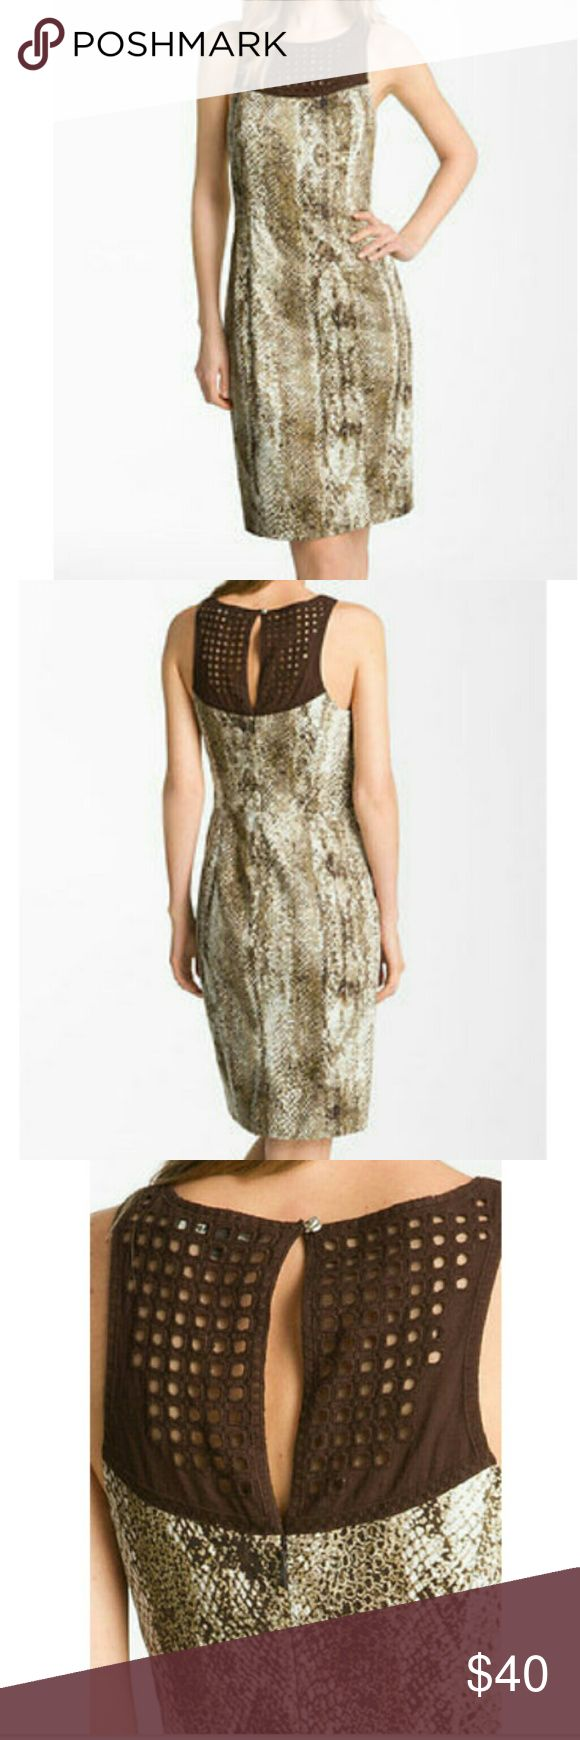 NWT Rachel Roy snake  print dress NWT Rochel Roy crochet bib snake print sheath dress Rachel Roy Dresses Mini